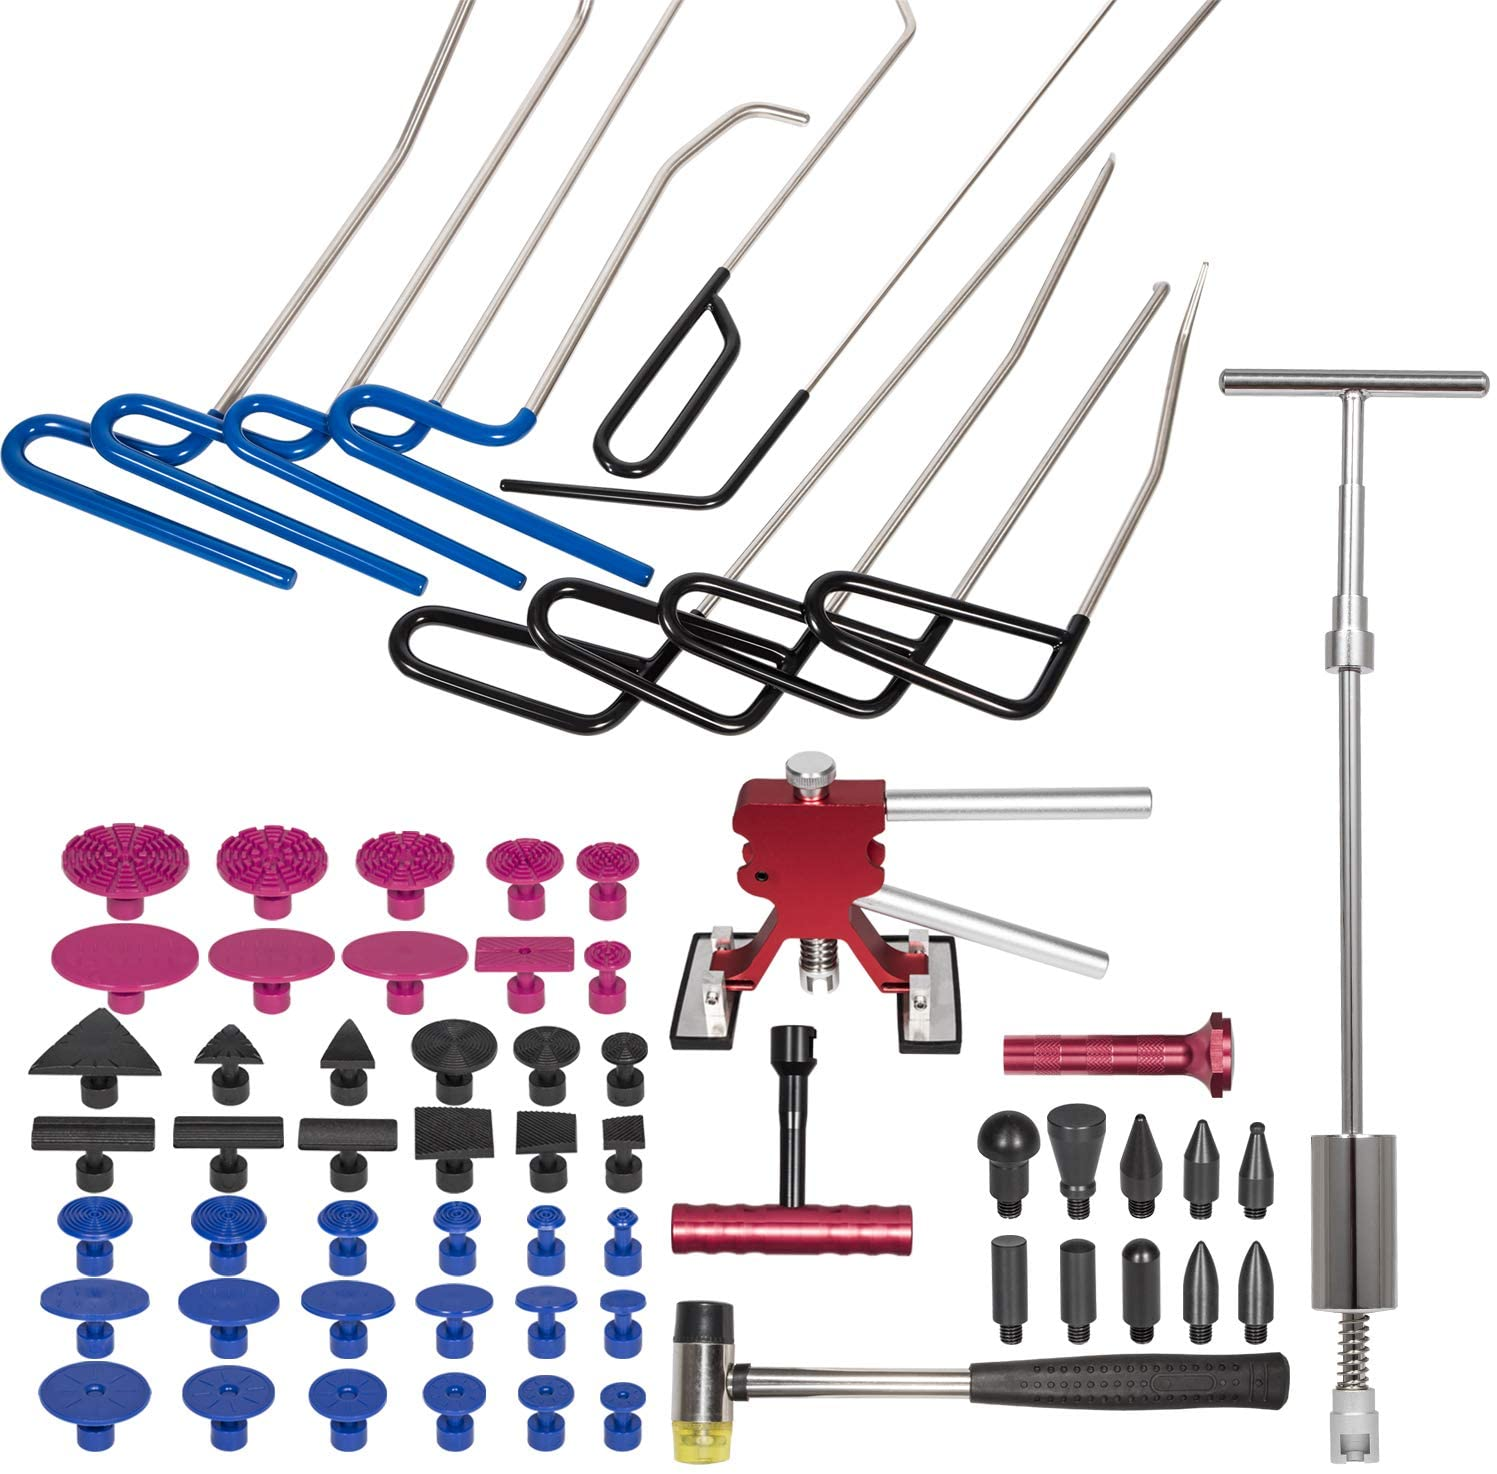 Danti 64 pcs Auto Body Repair Tools, Dent Puller Tools Push Rods, Car Dent Puller with Double Pole Bridge Dent Puller, Glue Puller Tabs for Auto Dent Removal, Minor dents, Door Dings and Hail Damage